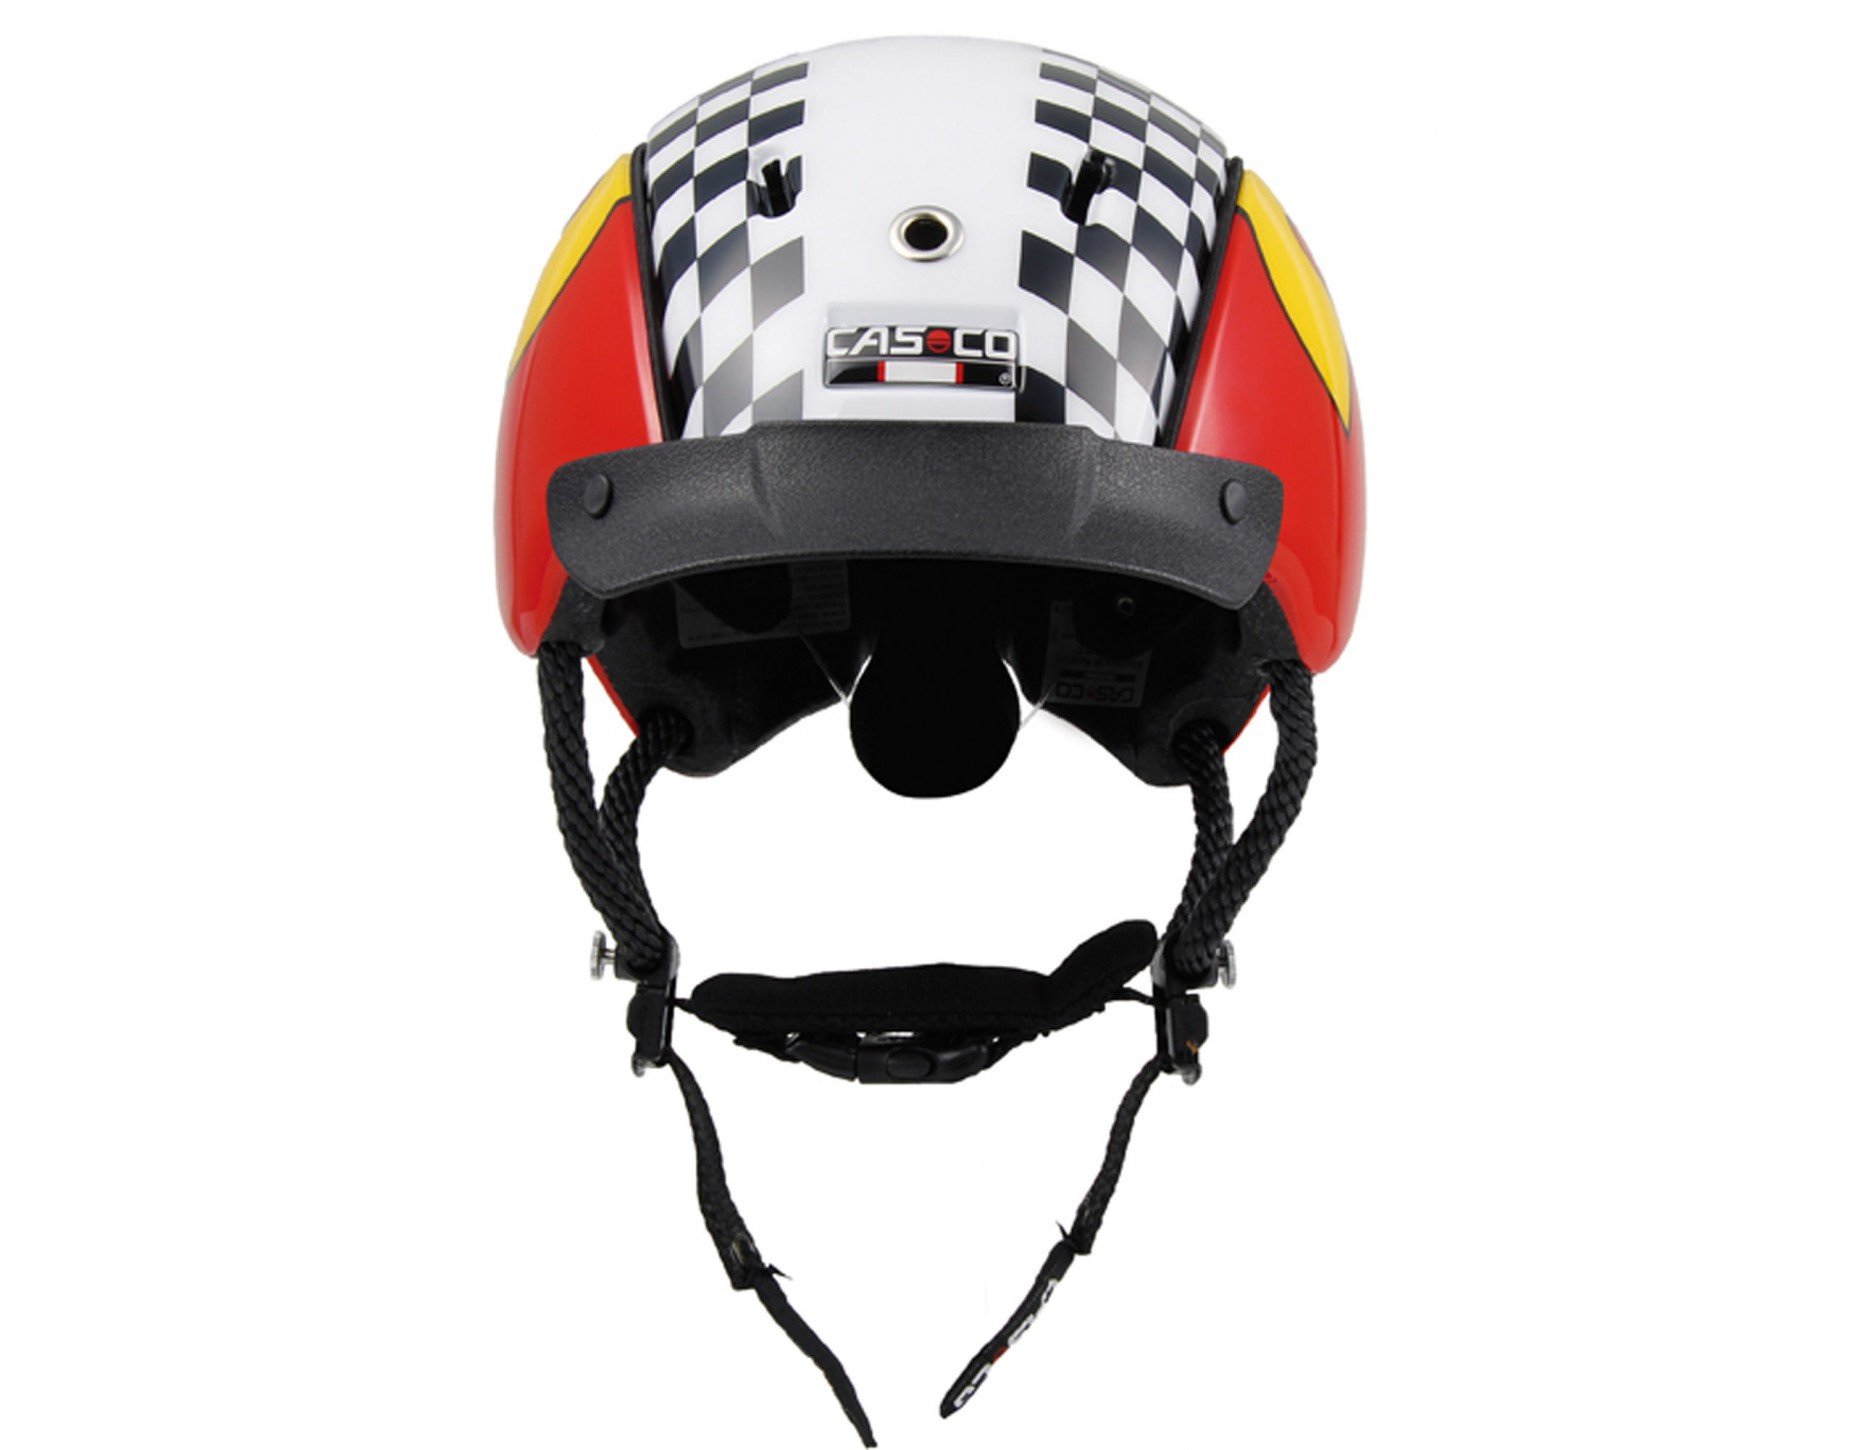 CASCO Mini Generation kinderhelm Racer 3